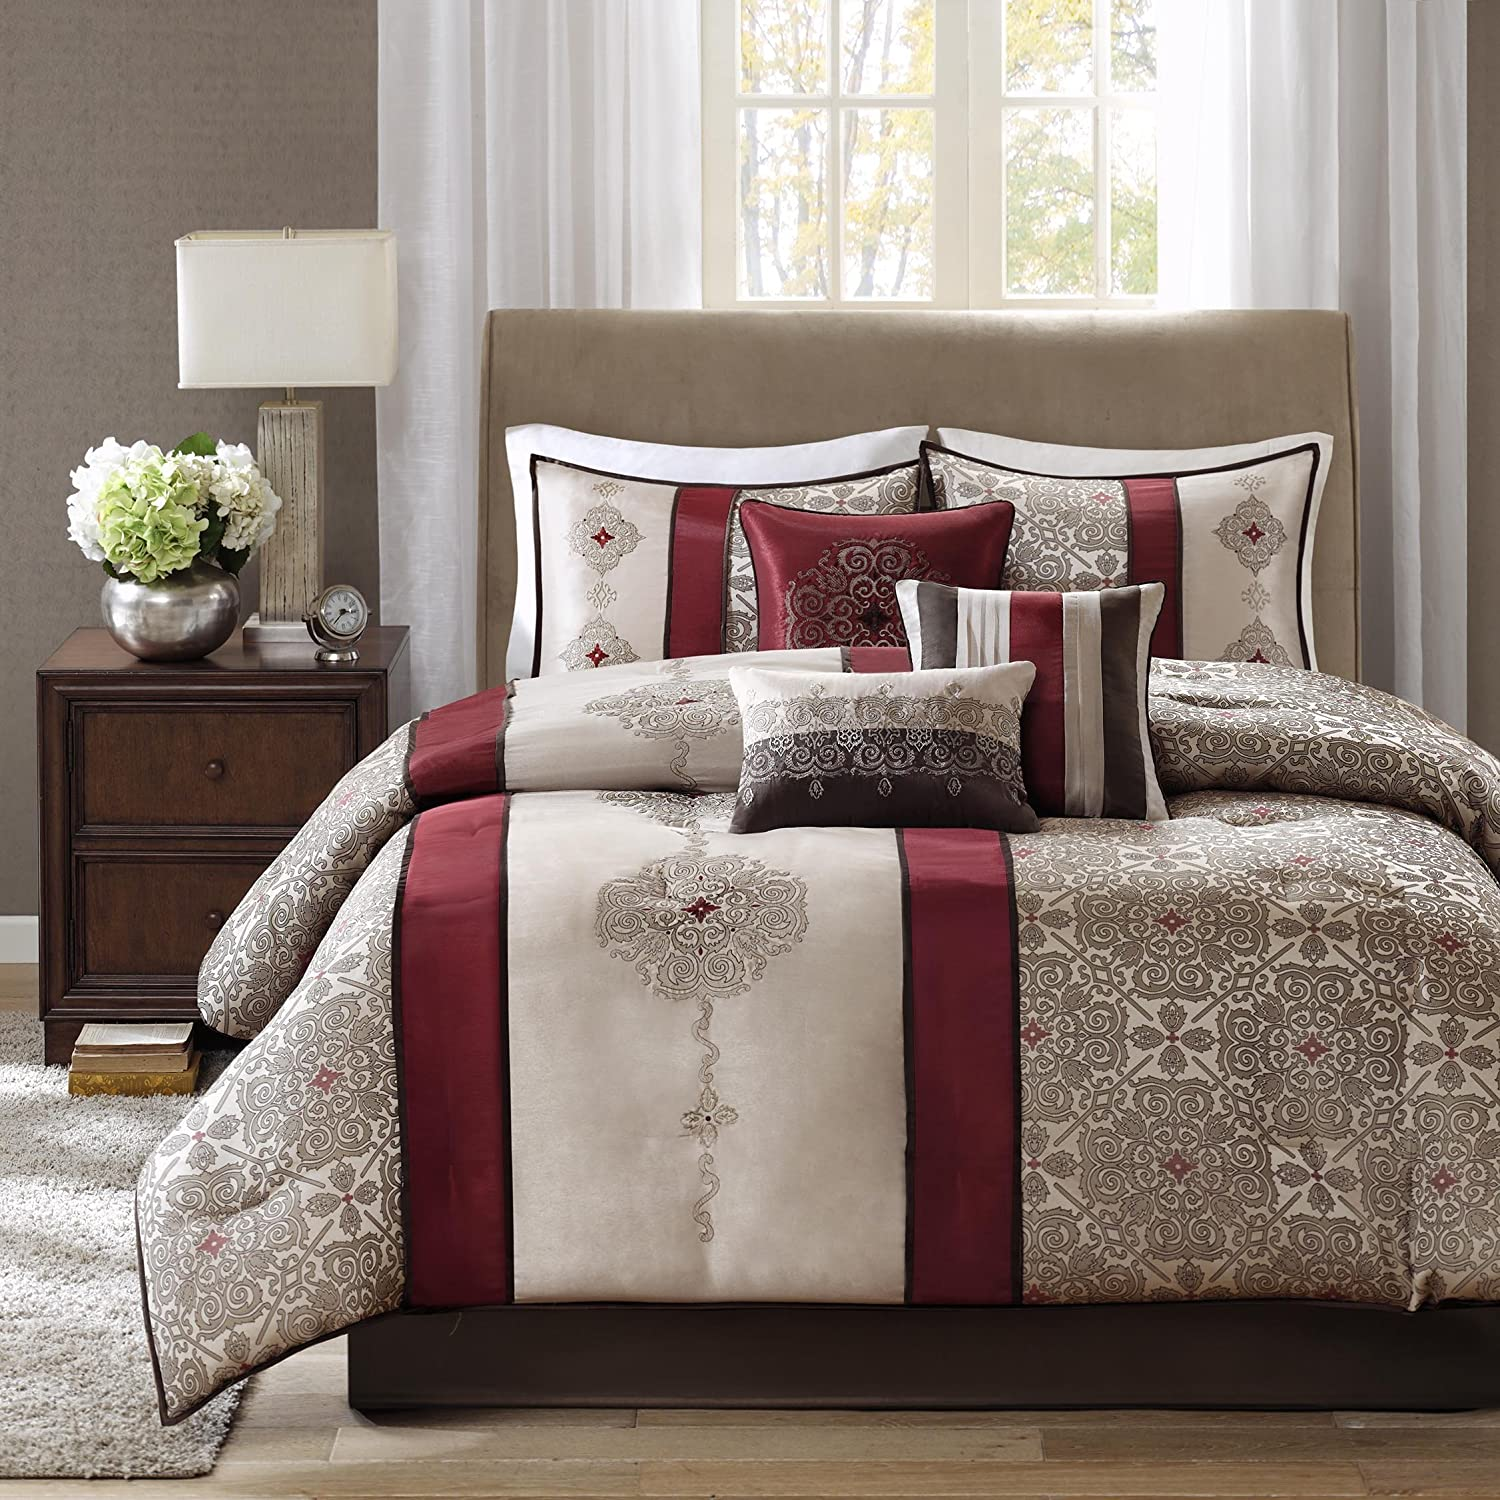 Madison Park Donovan King Size Bed Comforter Set Bed in A Bag - Taupe, Burgundy, Jacquard Pattern